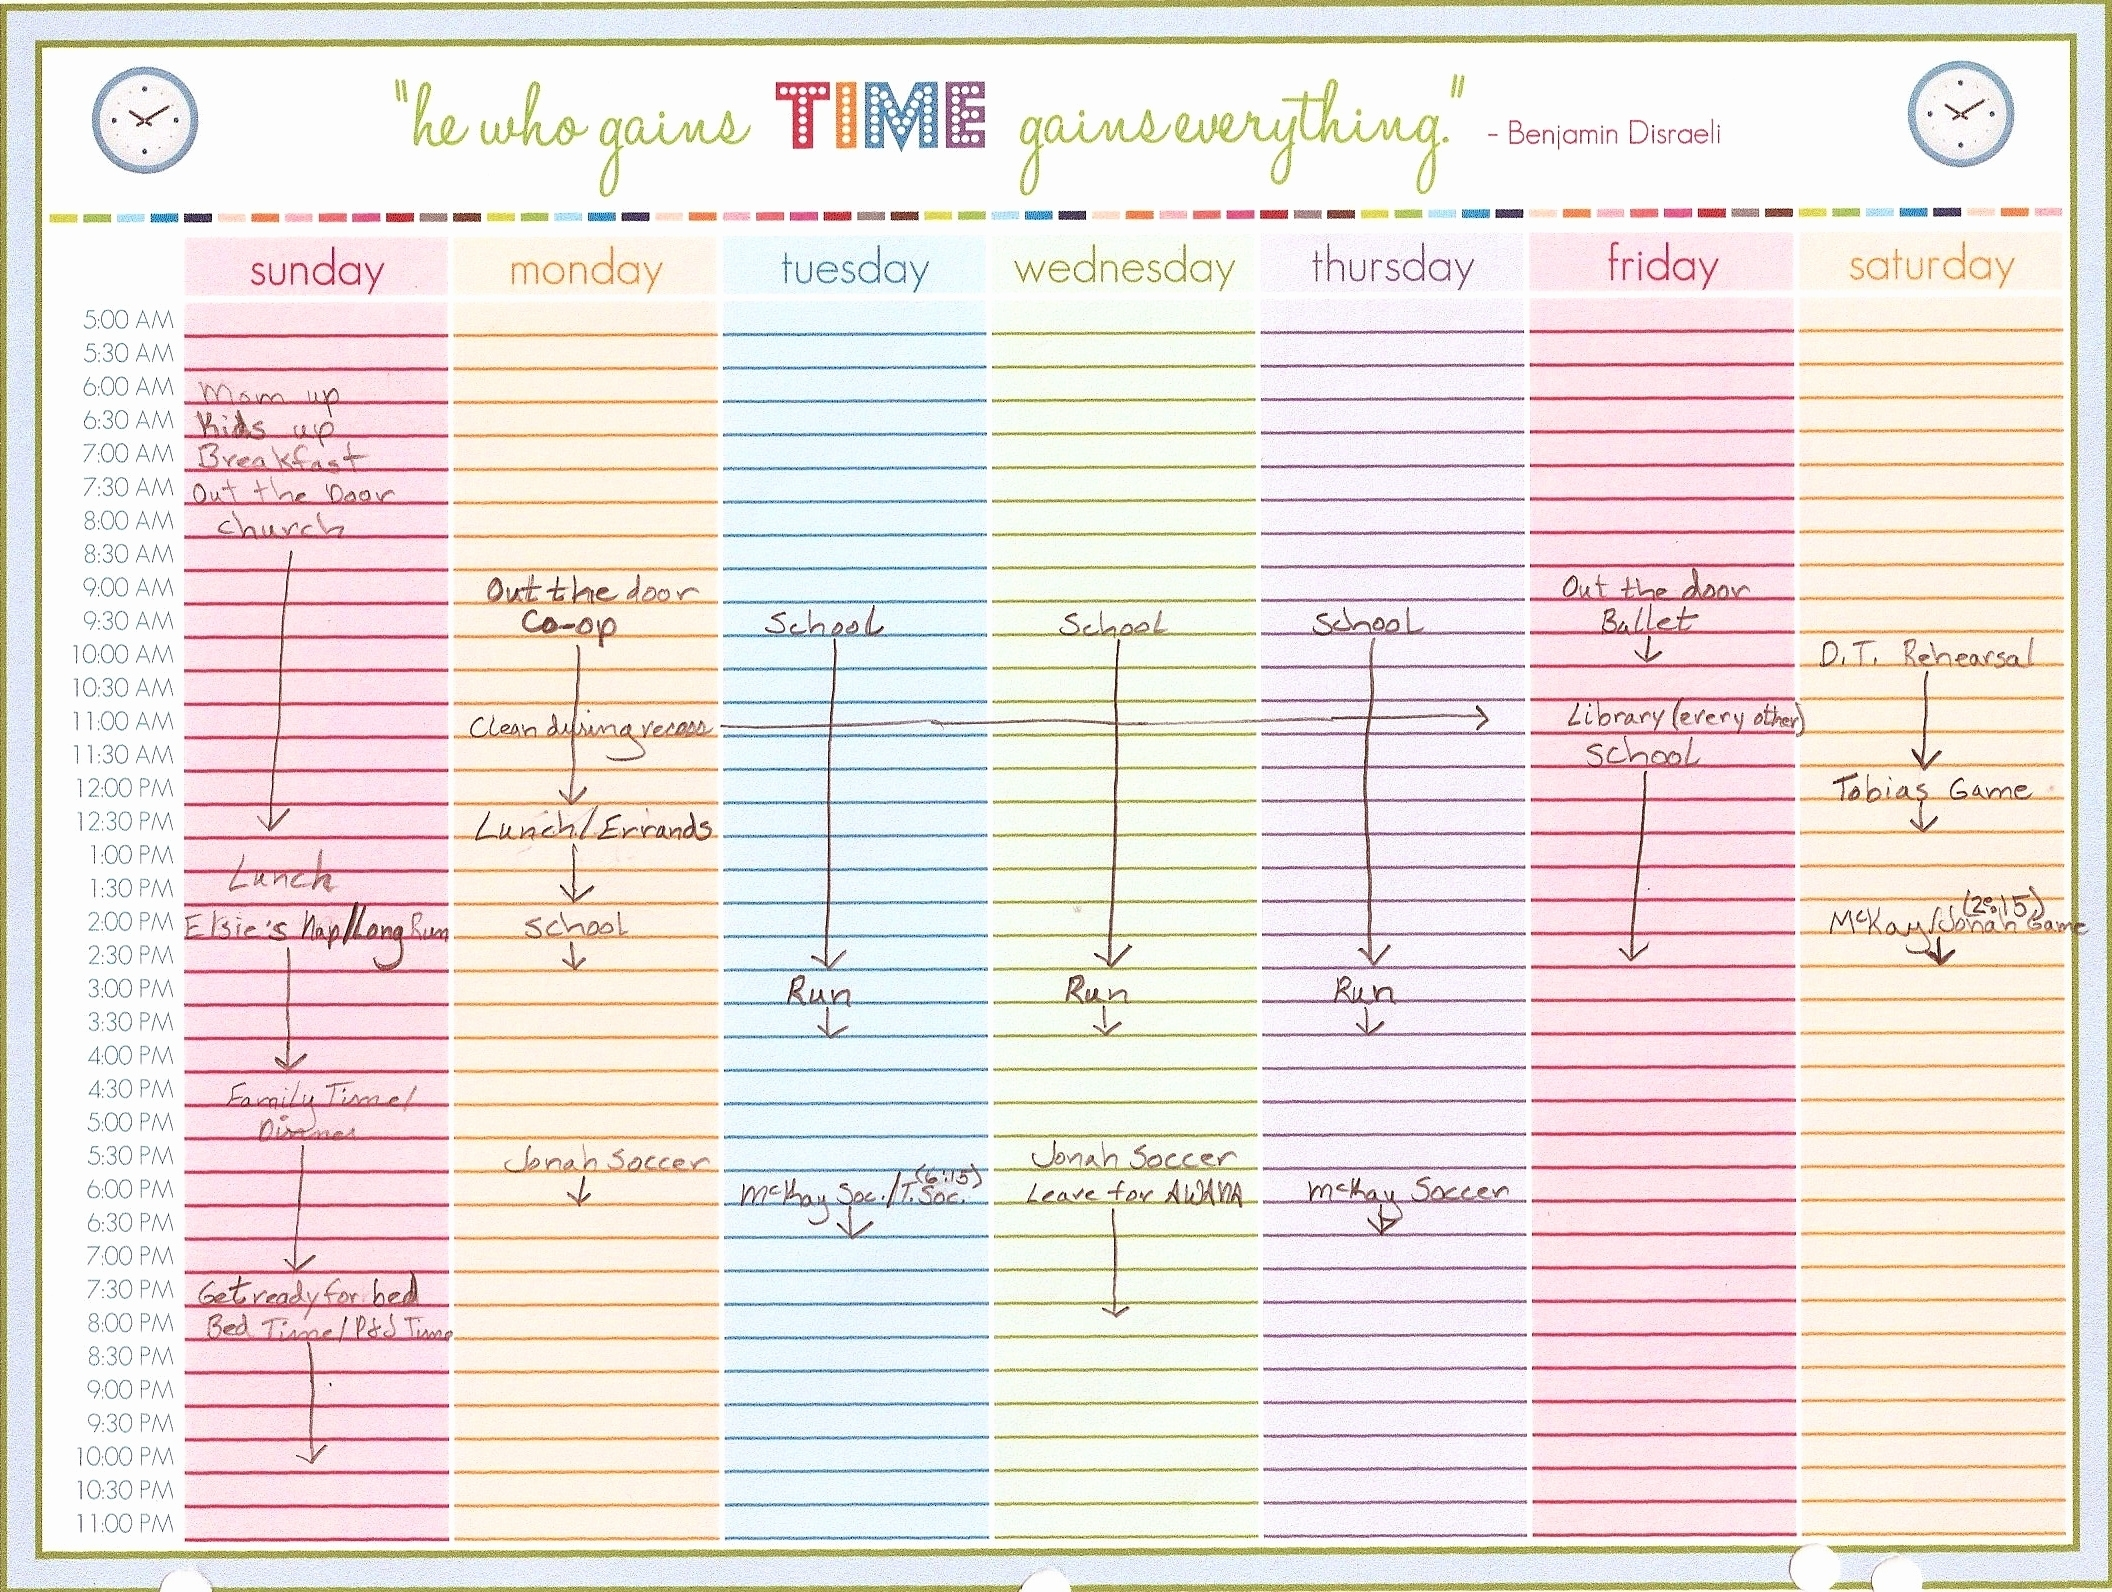 Weekly Calendar With Time Slots Monthly Calendar With Time Slots intended for Weekly Calendar With Time Slots Printable